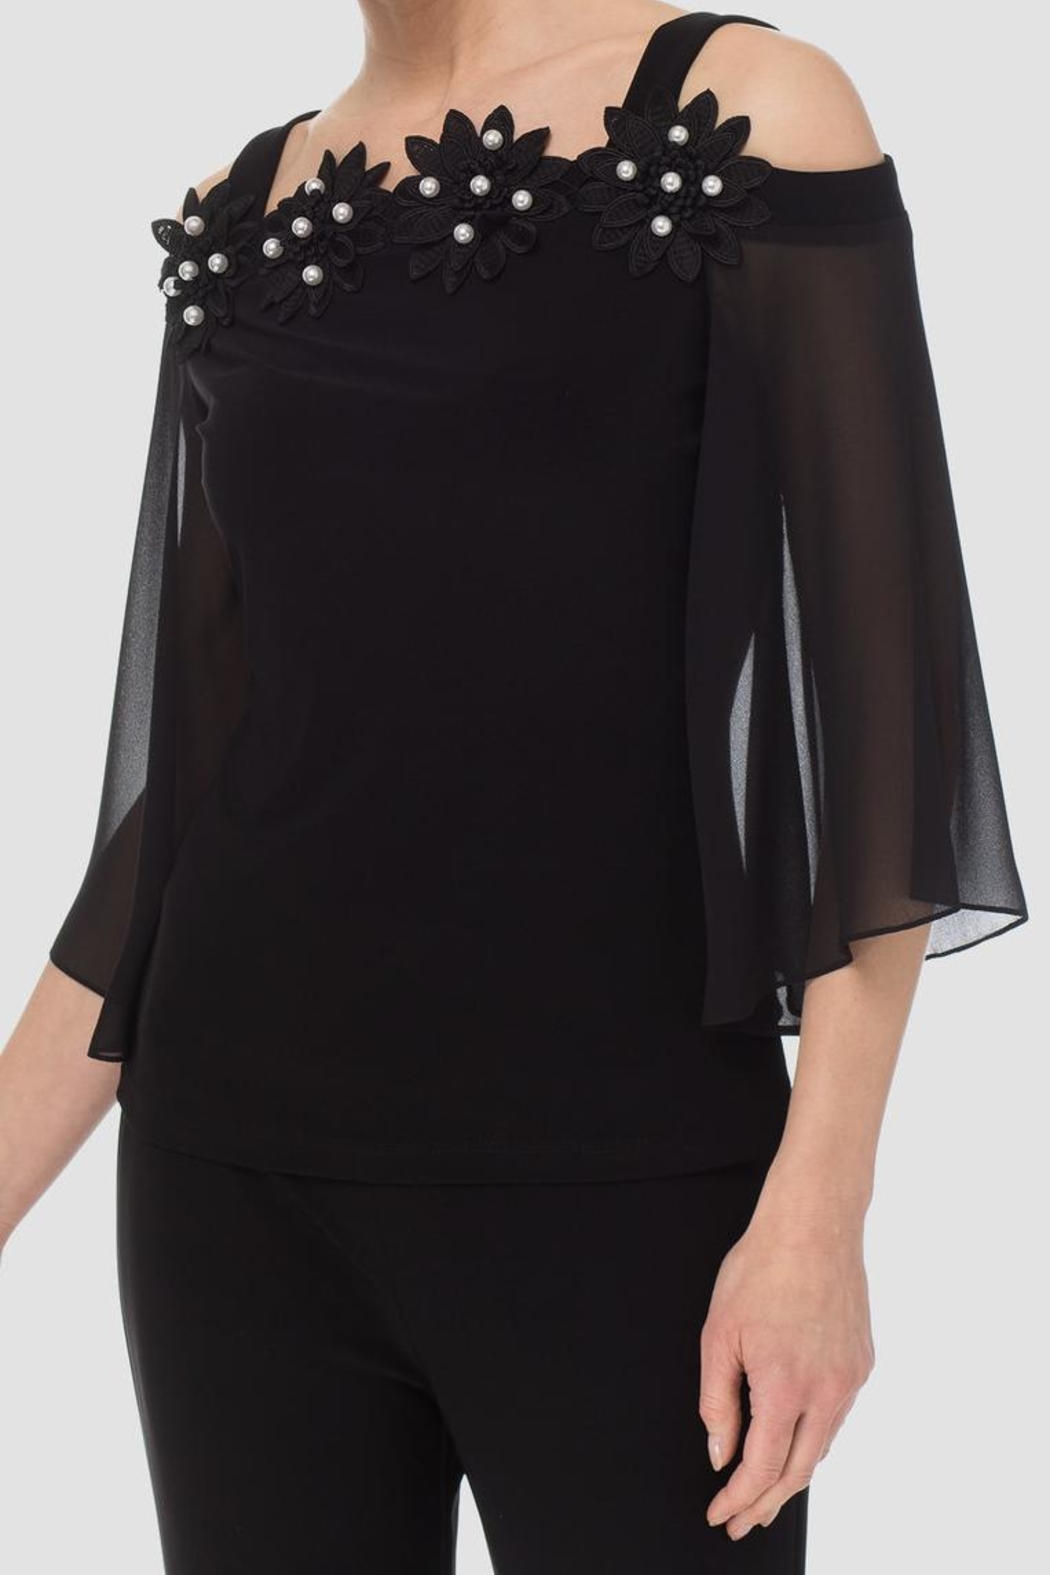 Joseph Ribkoff Black Applique Top - Front Cropped Image